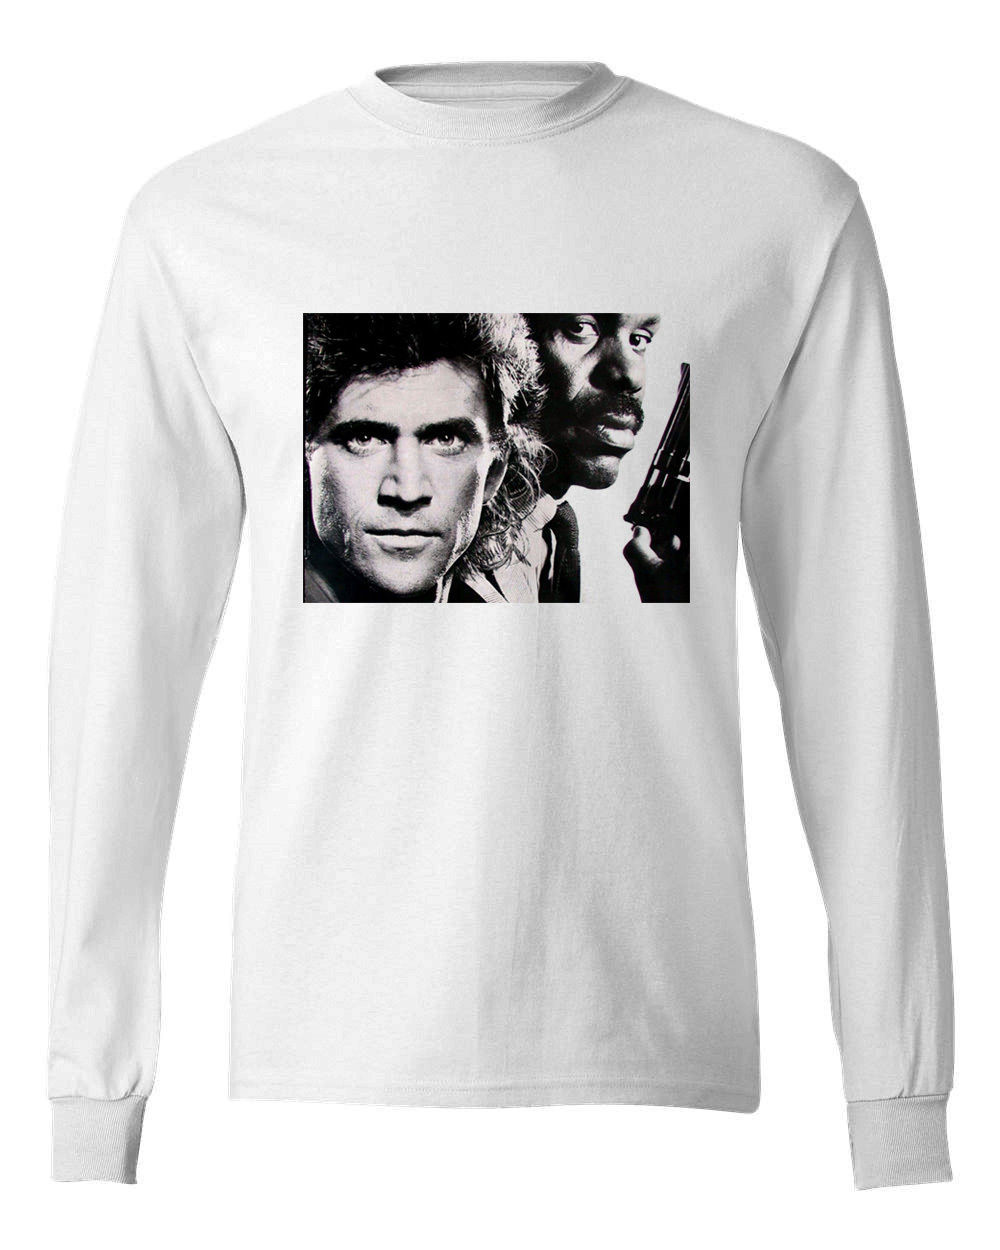 Lethal weapon retro 80 s t shirt mel gibson danny glover long sleeve white graphic tee